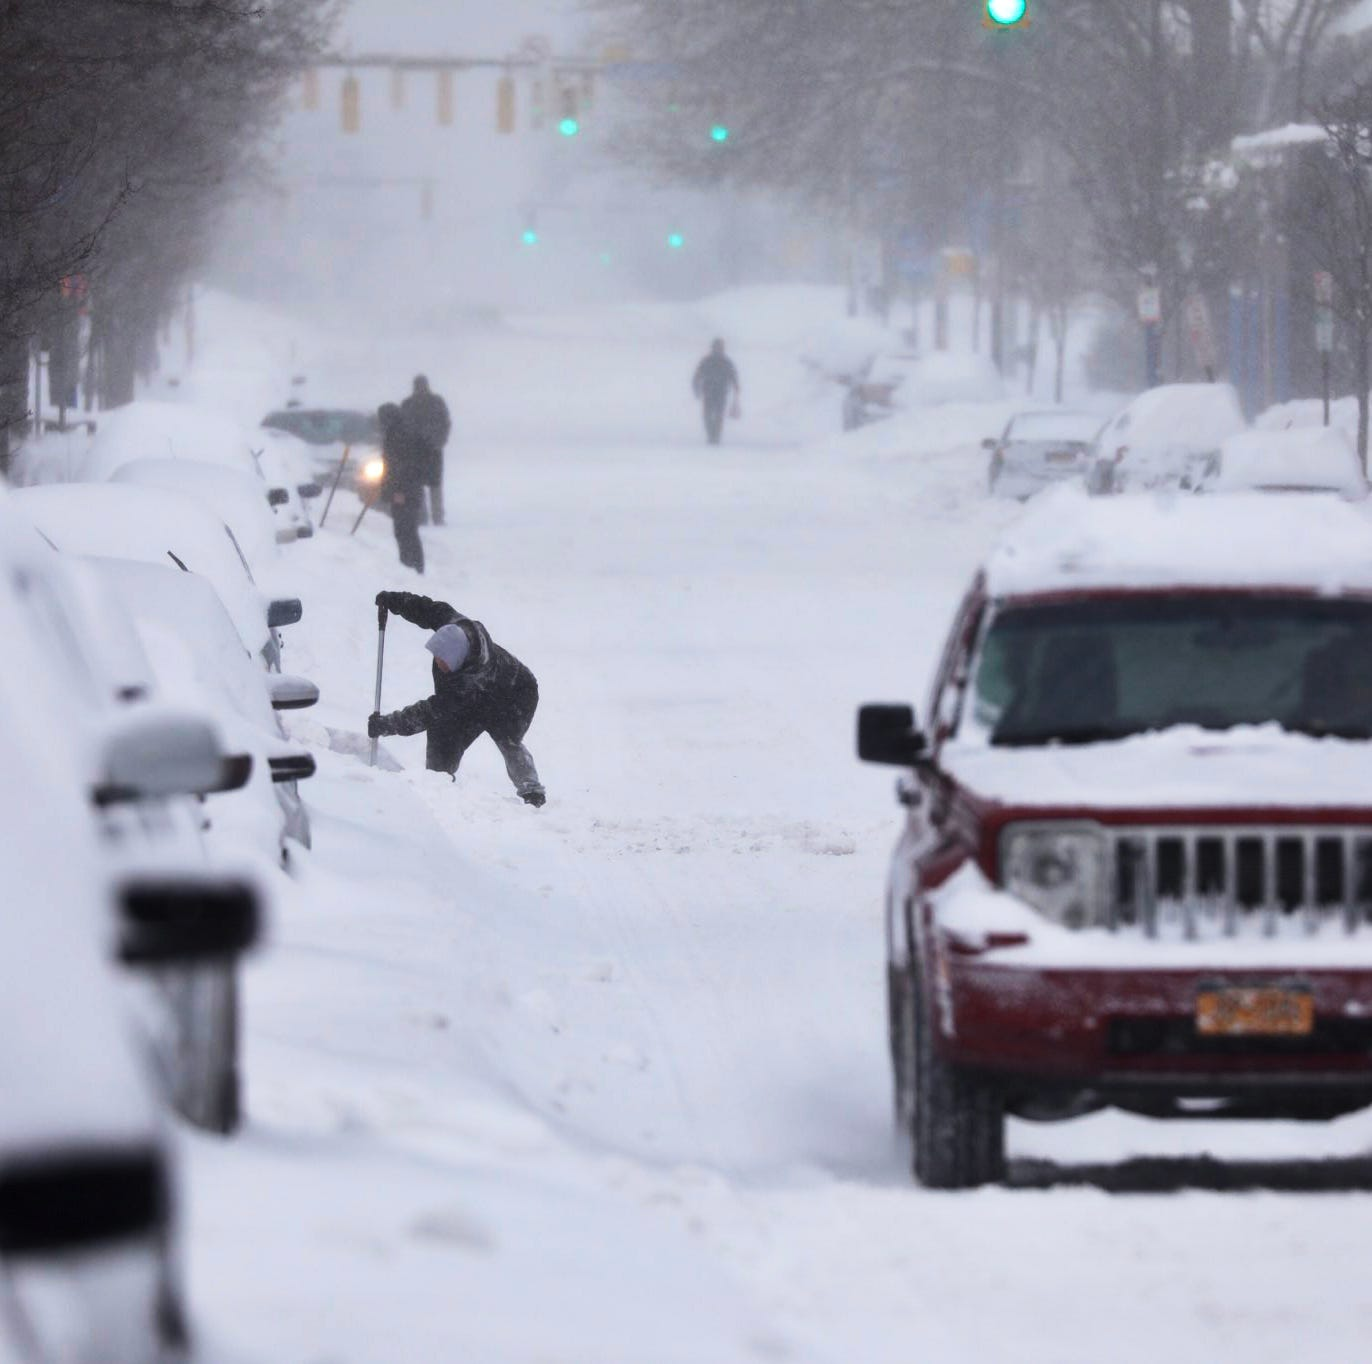 Brutal cold follows hard on the heels of major snowfall across Rochester region